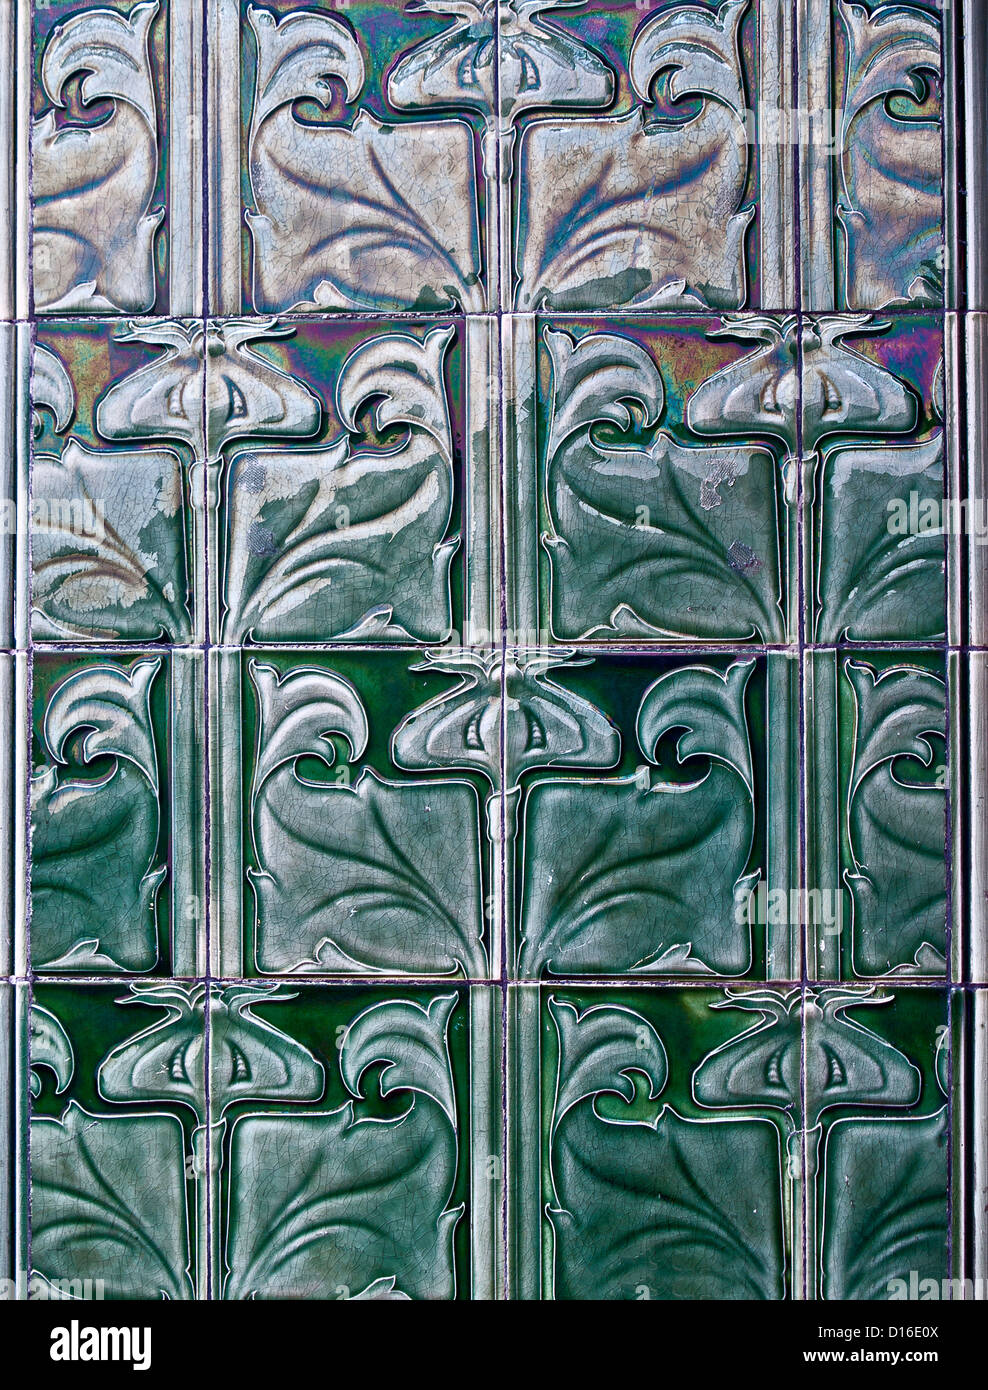 Wall tiles, Victoria Baths, Manchester - Stock Image